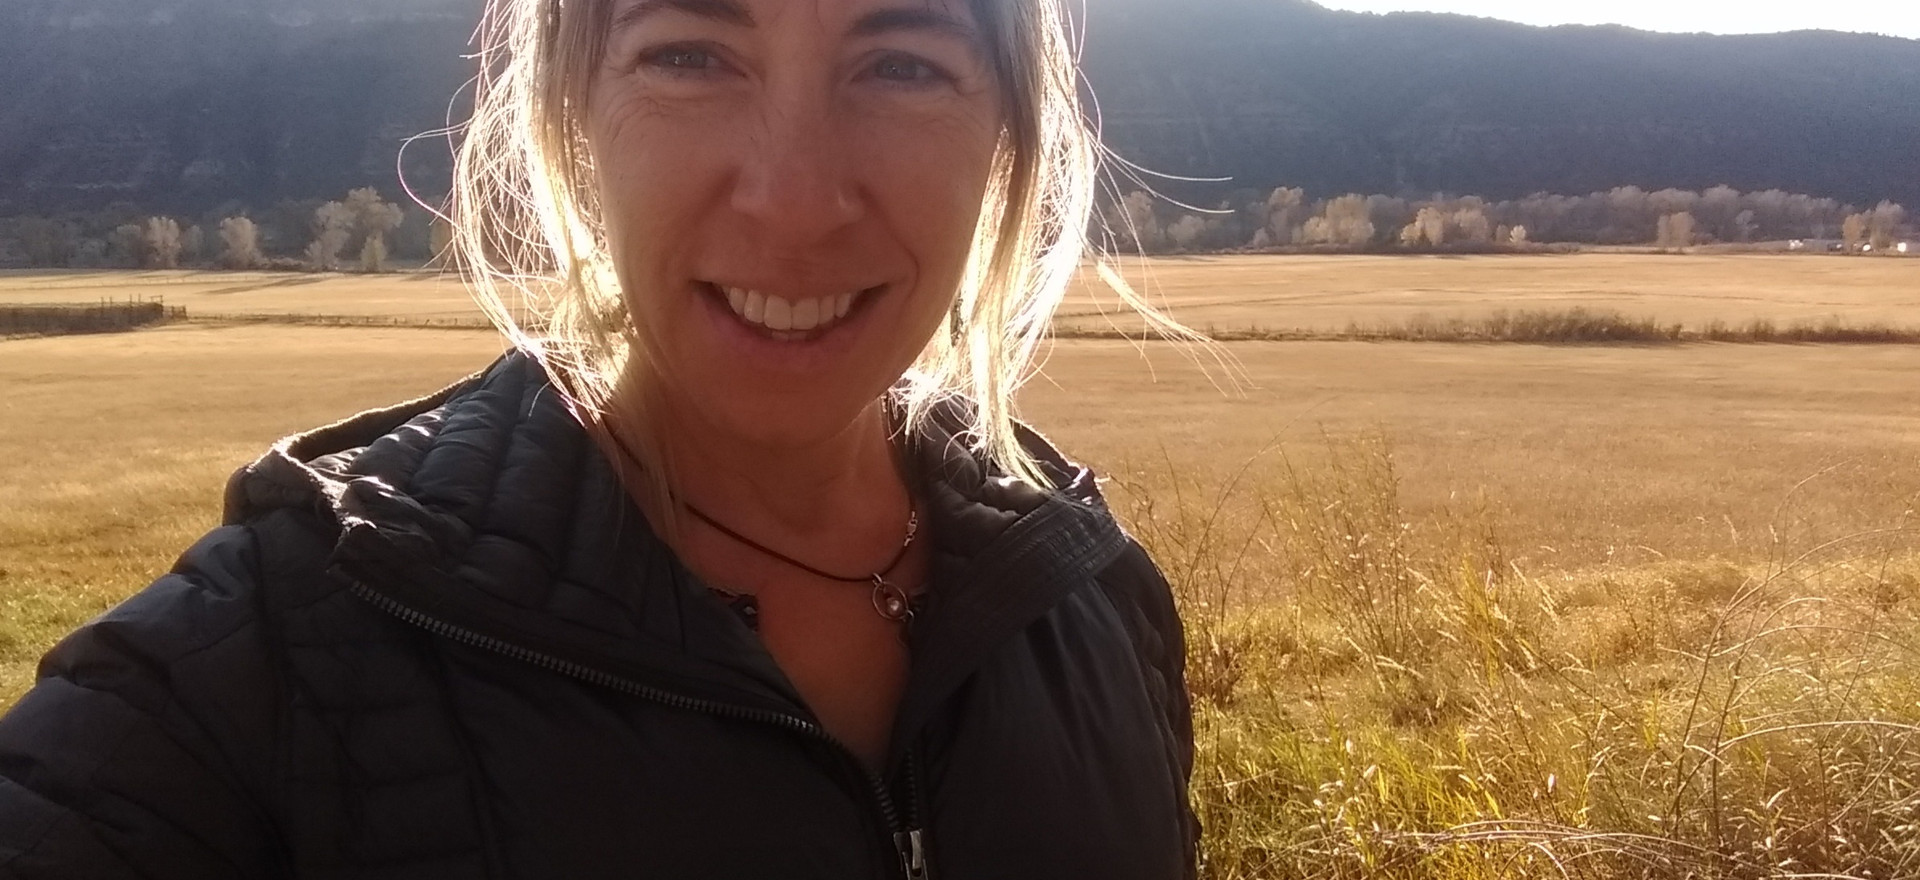 Angie Jenson -- ISA Certified Arborist (RM7221A) and Professional Forester